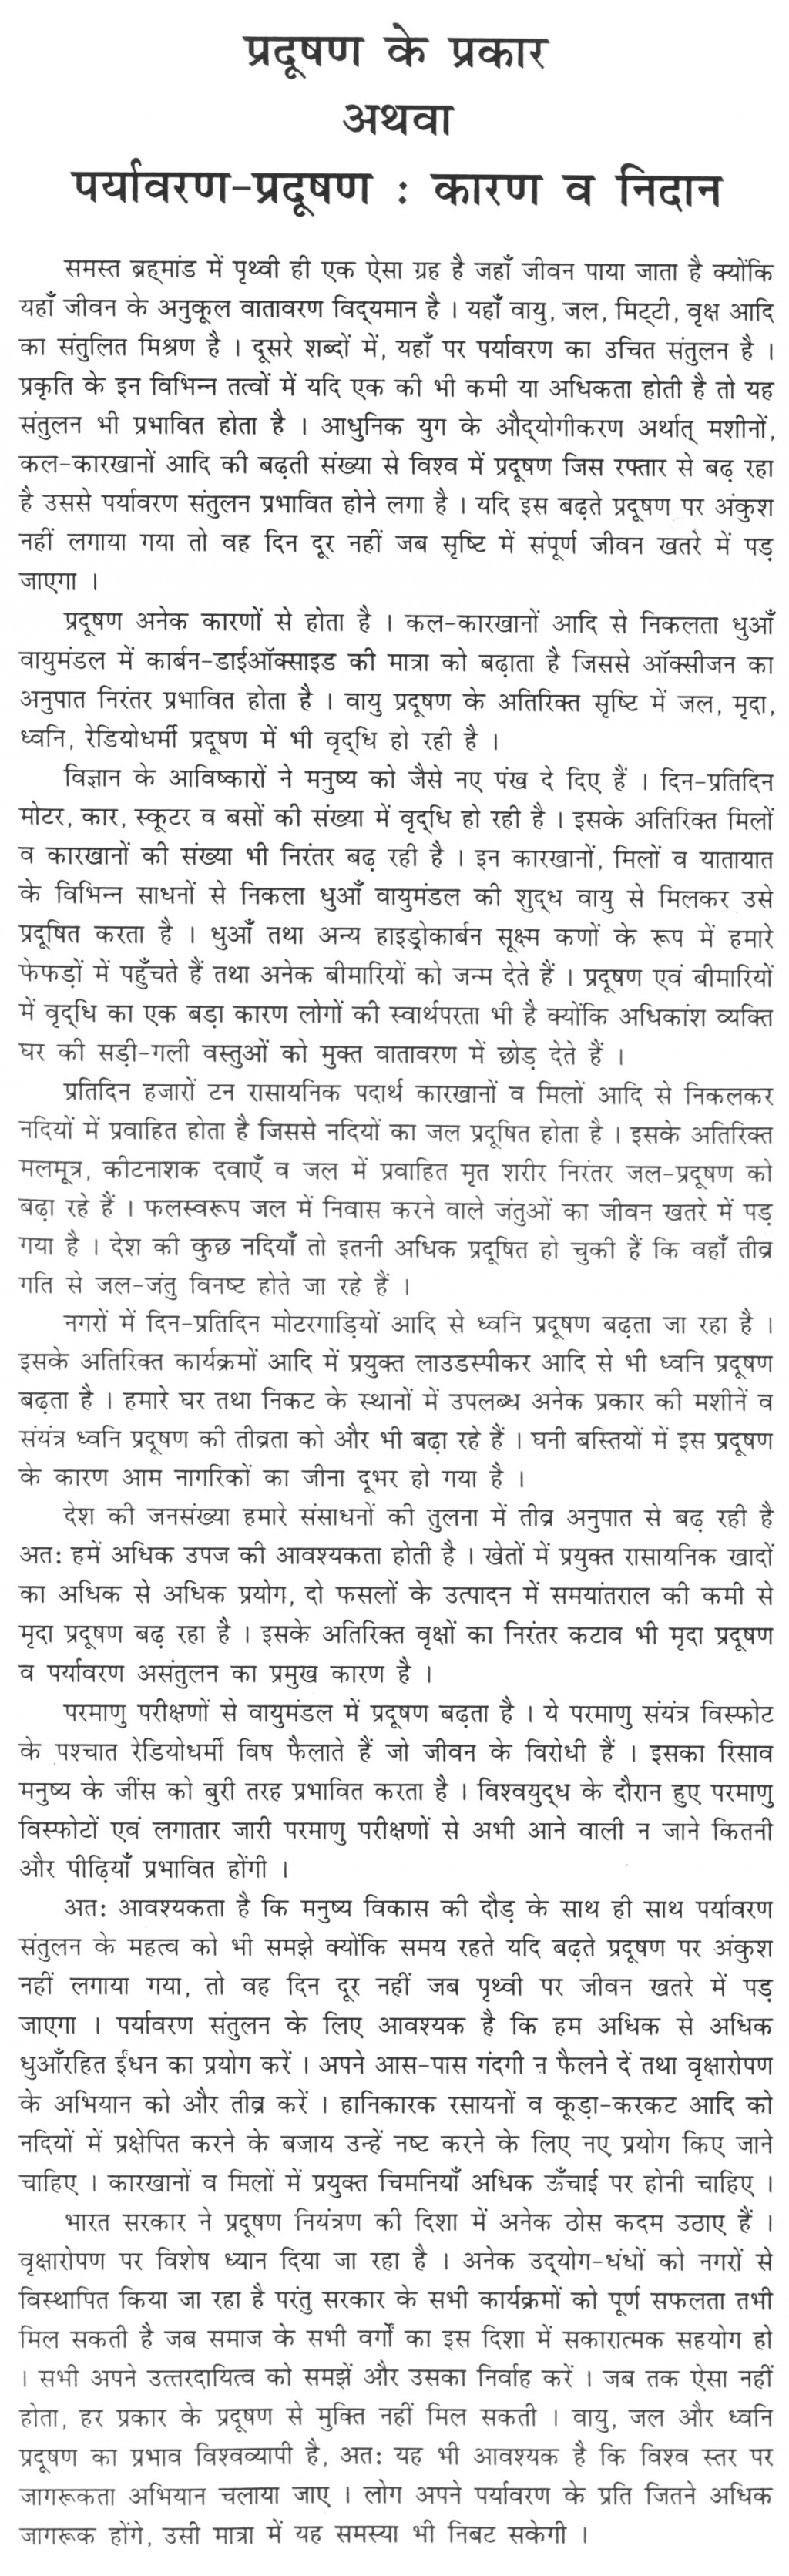 014 Good Habits Essay In Hindi Exceptional Reading Habit Wikipedia Large